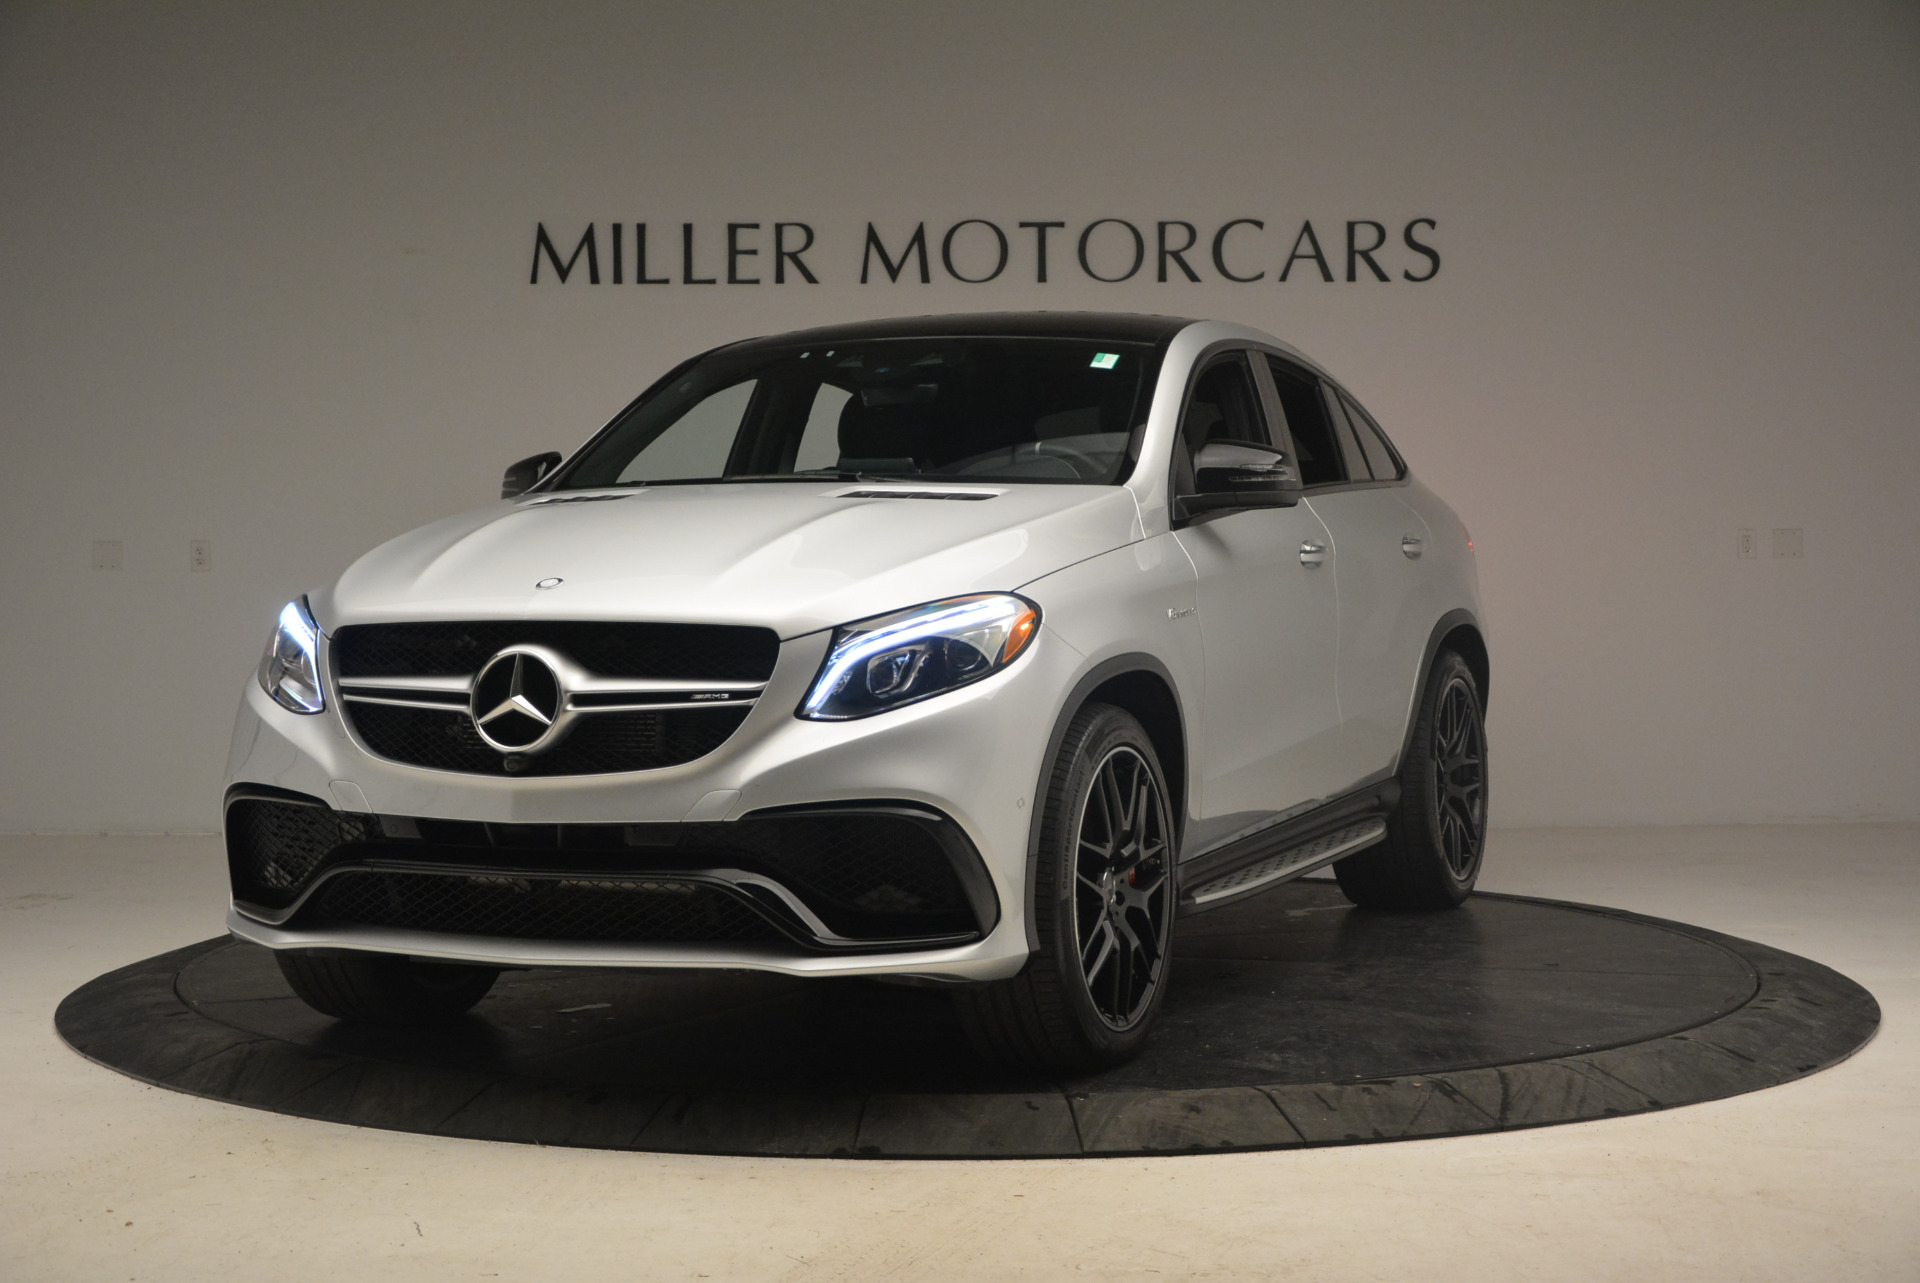 Used 2016 Mercedes Benz AMG GLE63 S for sale Sold at Aston Martin of Greenwich in Greenwich CT 06830 1